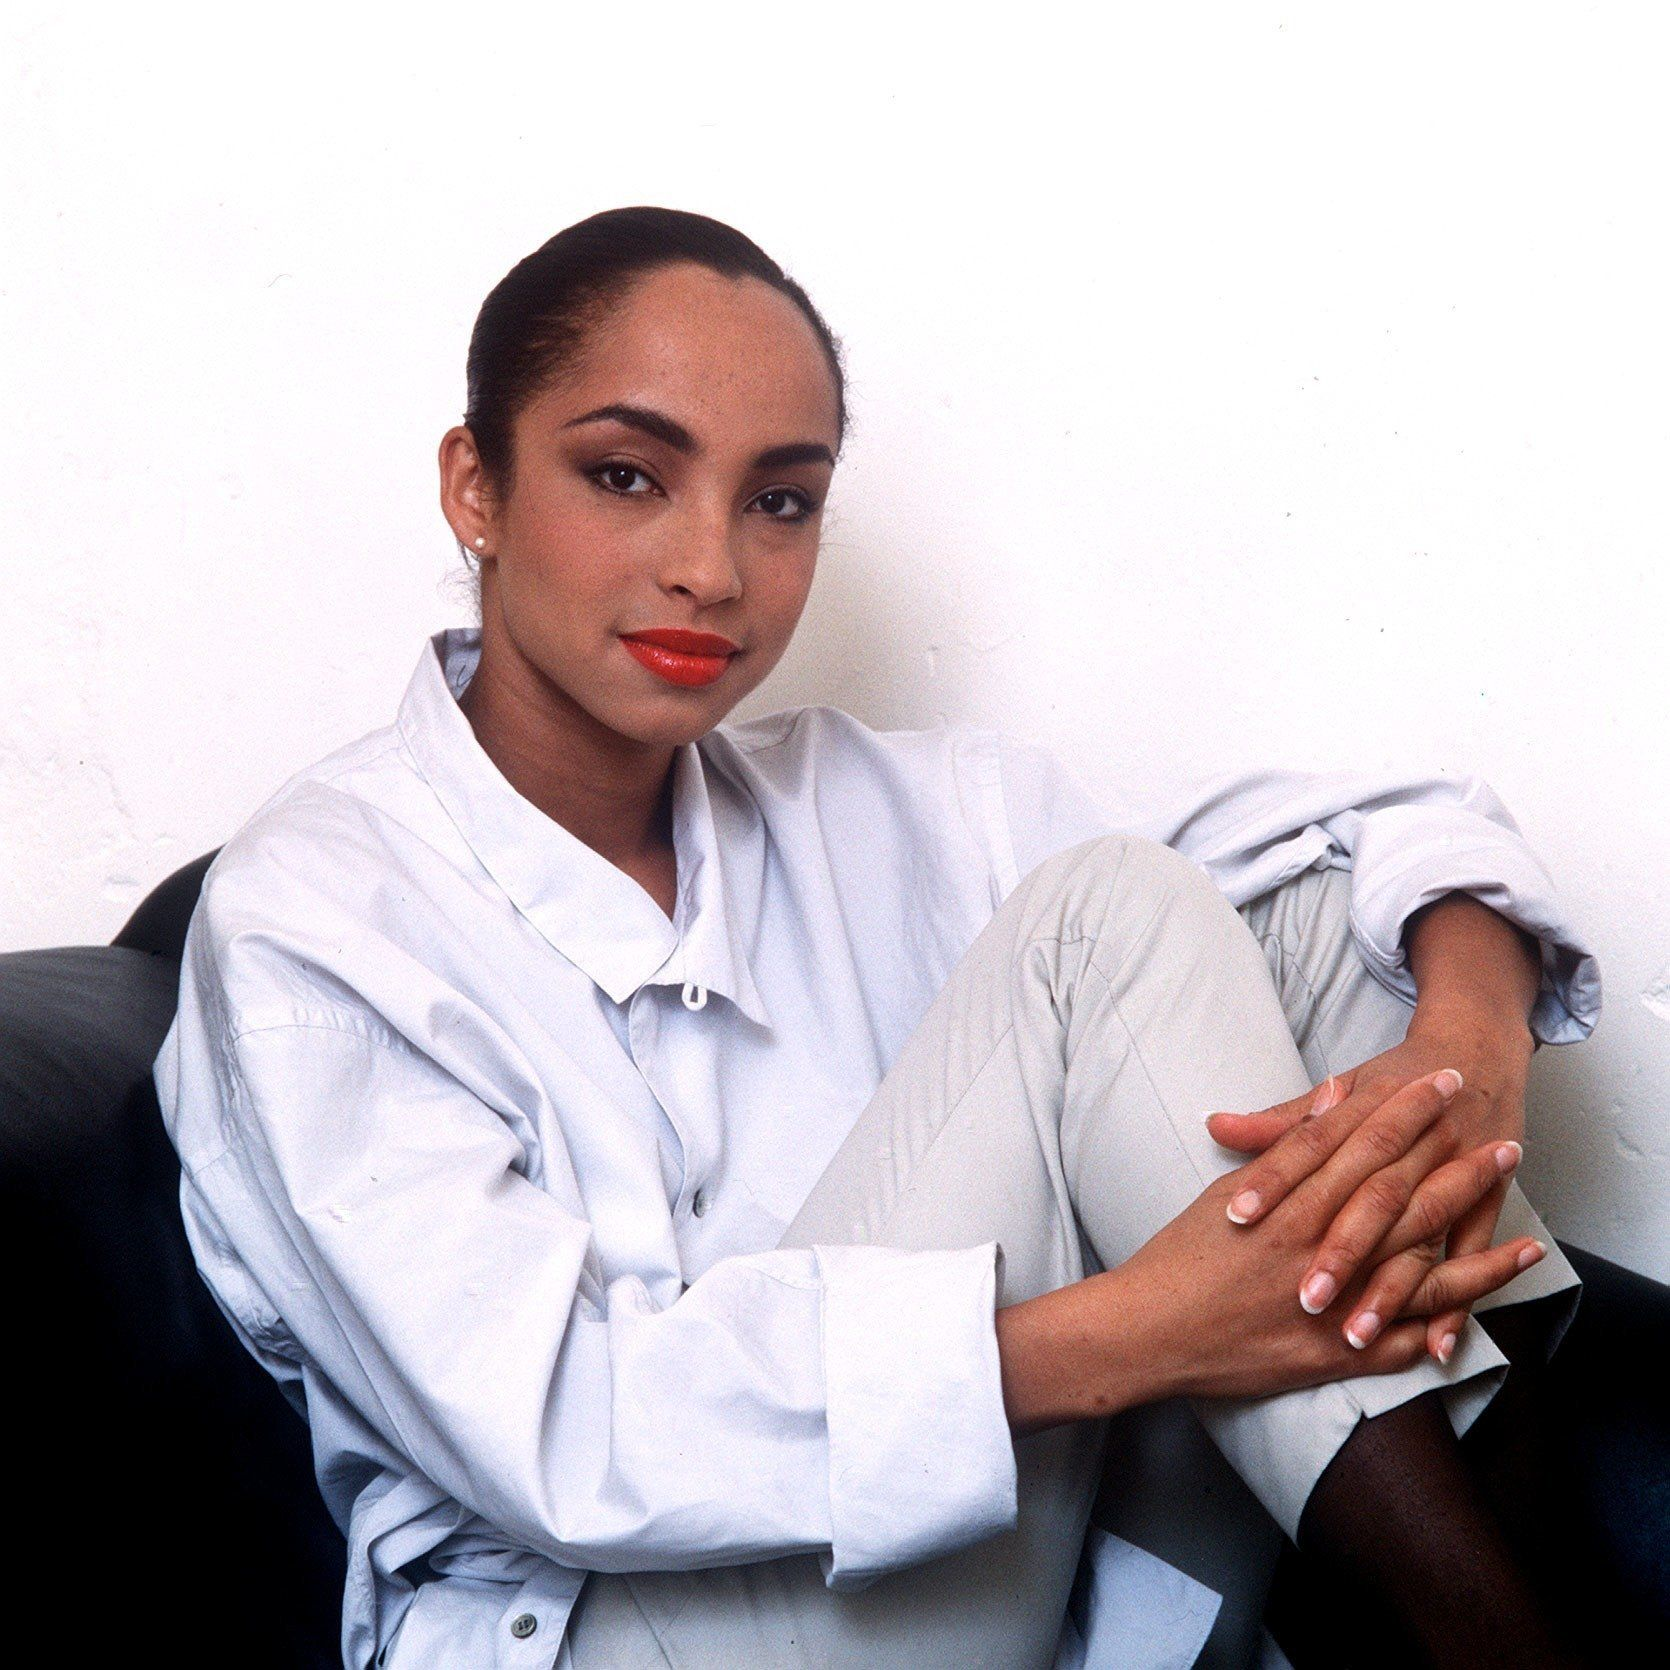 British singer songwriter Sade Adu, lead singer of the R&B group Sade, August 1985. (Photo by Mirrorpix/Getty Images)